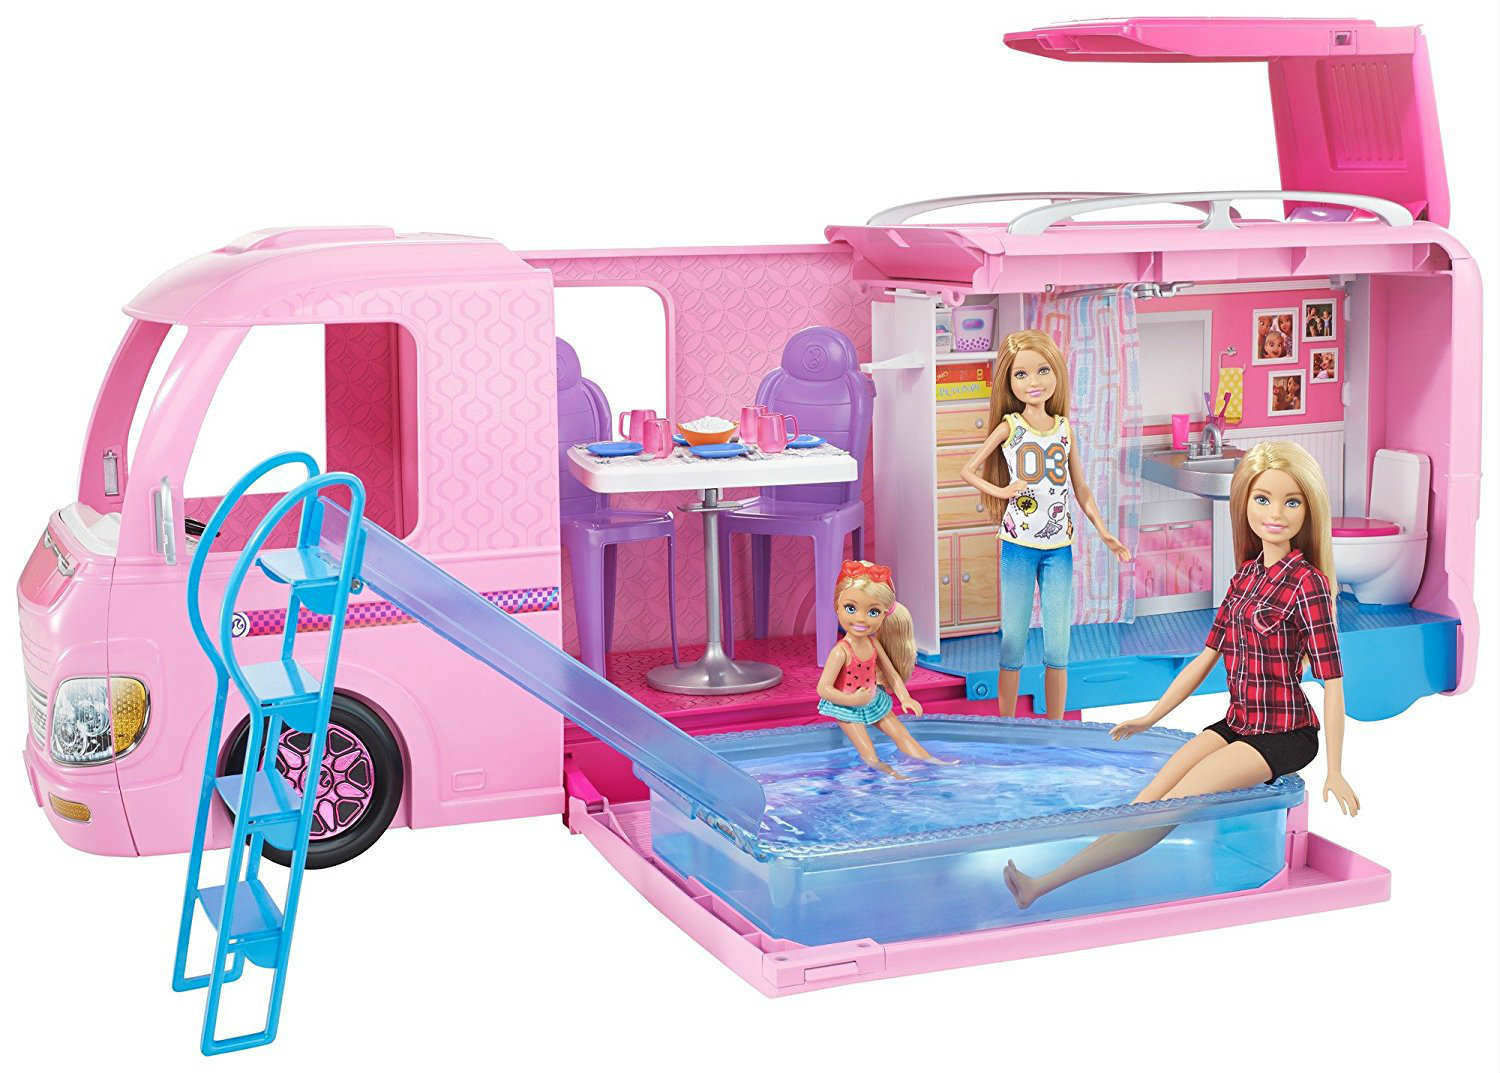 Yeni barbie muhte em karavan barbie nin pembe karavan for Piscina can drago precios 2017